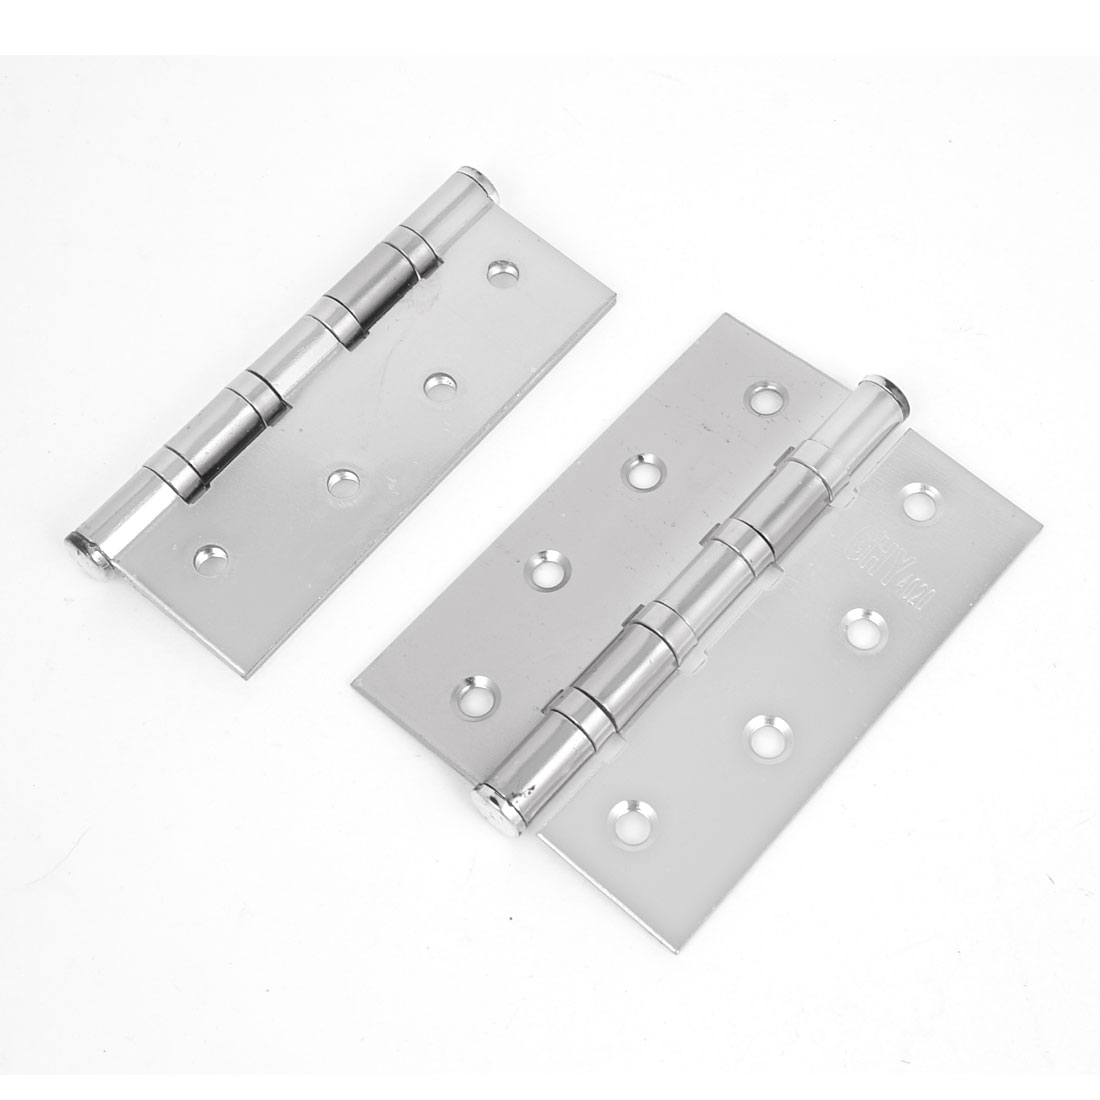 2 Pcs Cupboard Cabinet 5mm Dia Mounted Stainless Steel Folding Door Hinge